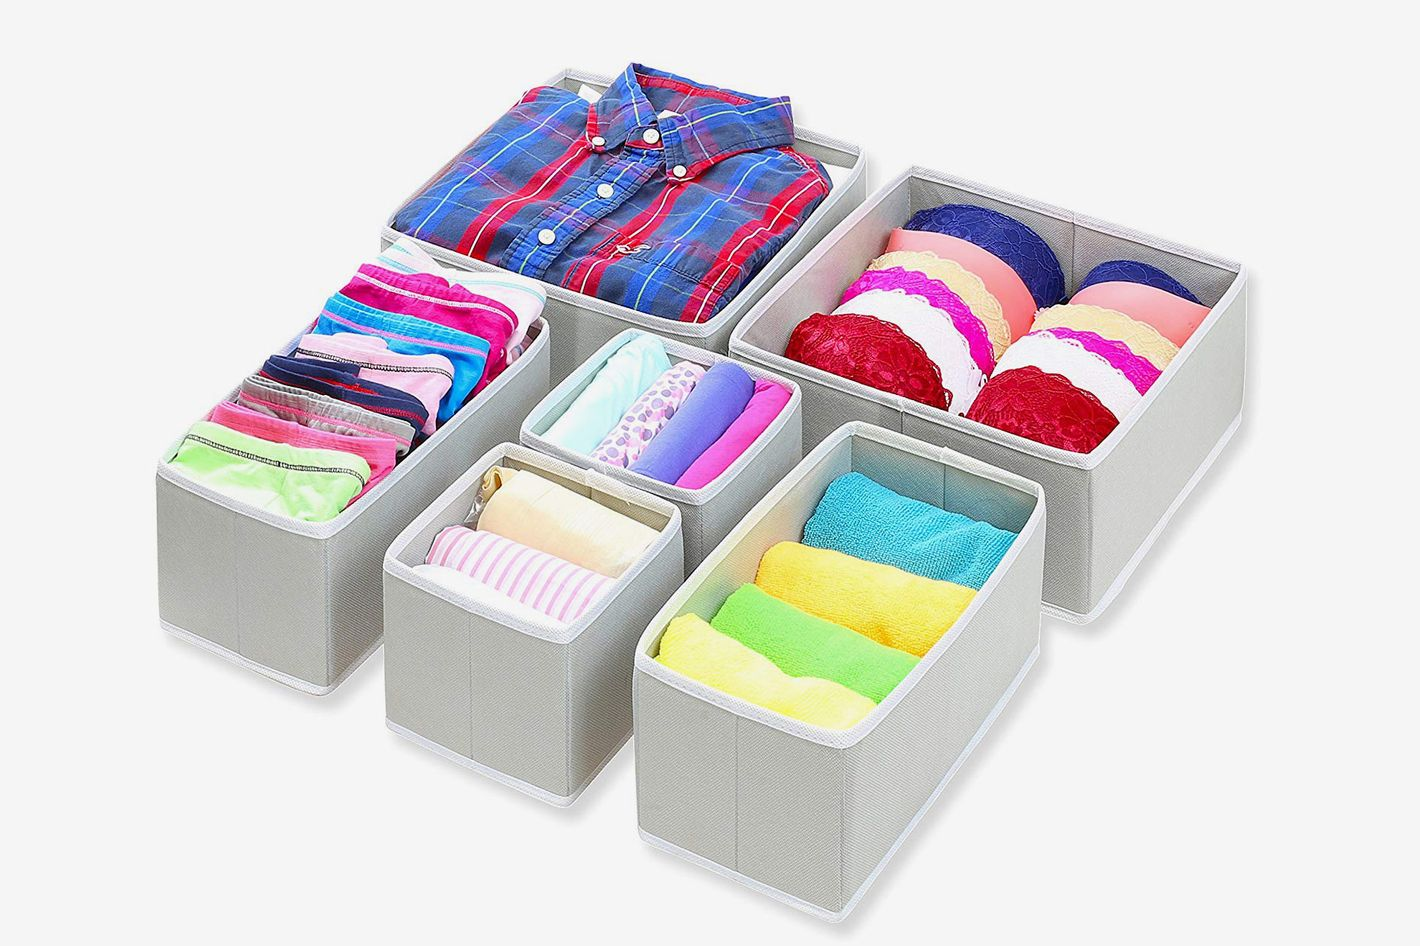 SimpleHouseware Foldable Cloth Organizer For Underwear Bras (Set Of 6)